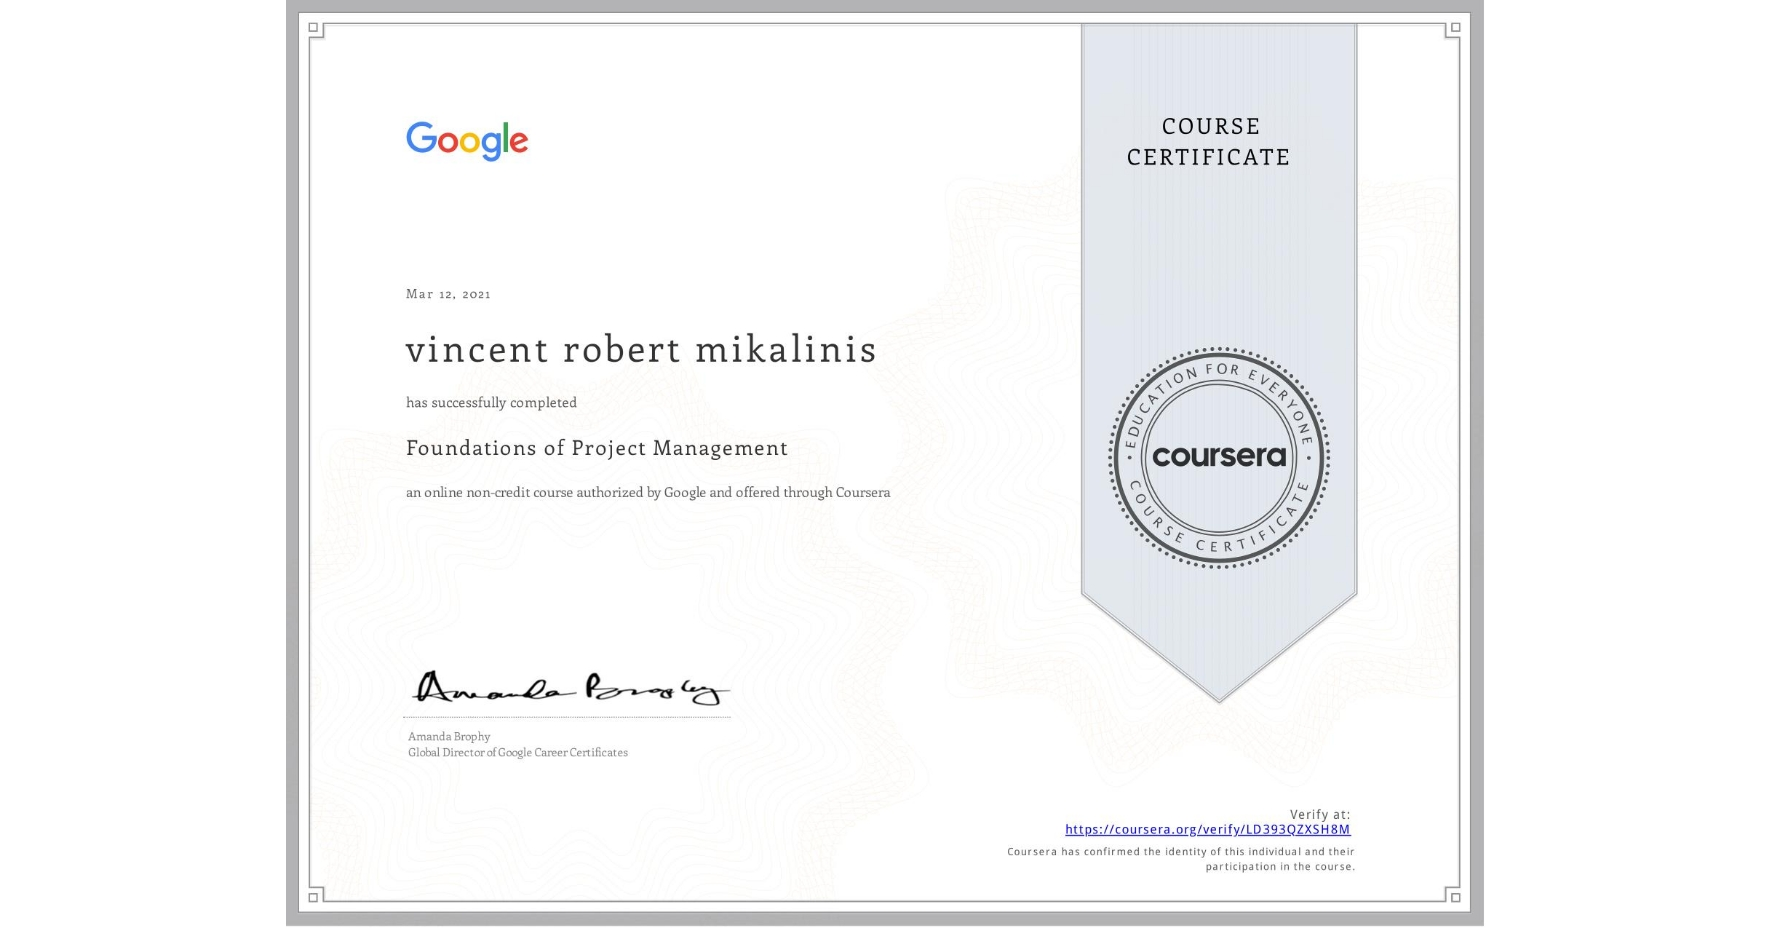 View certificate for vincent robert mikalinis, Foundations of Project Management, an online non-credit course authorized by Google and offered through Coursera